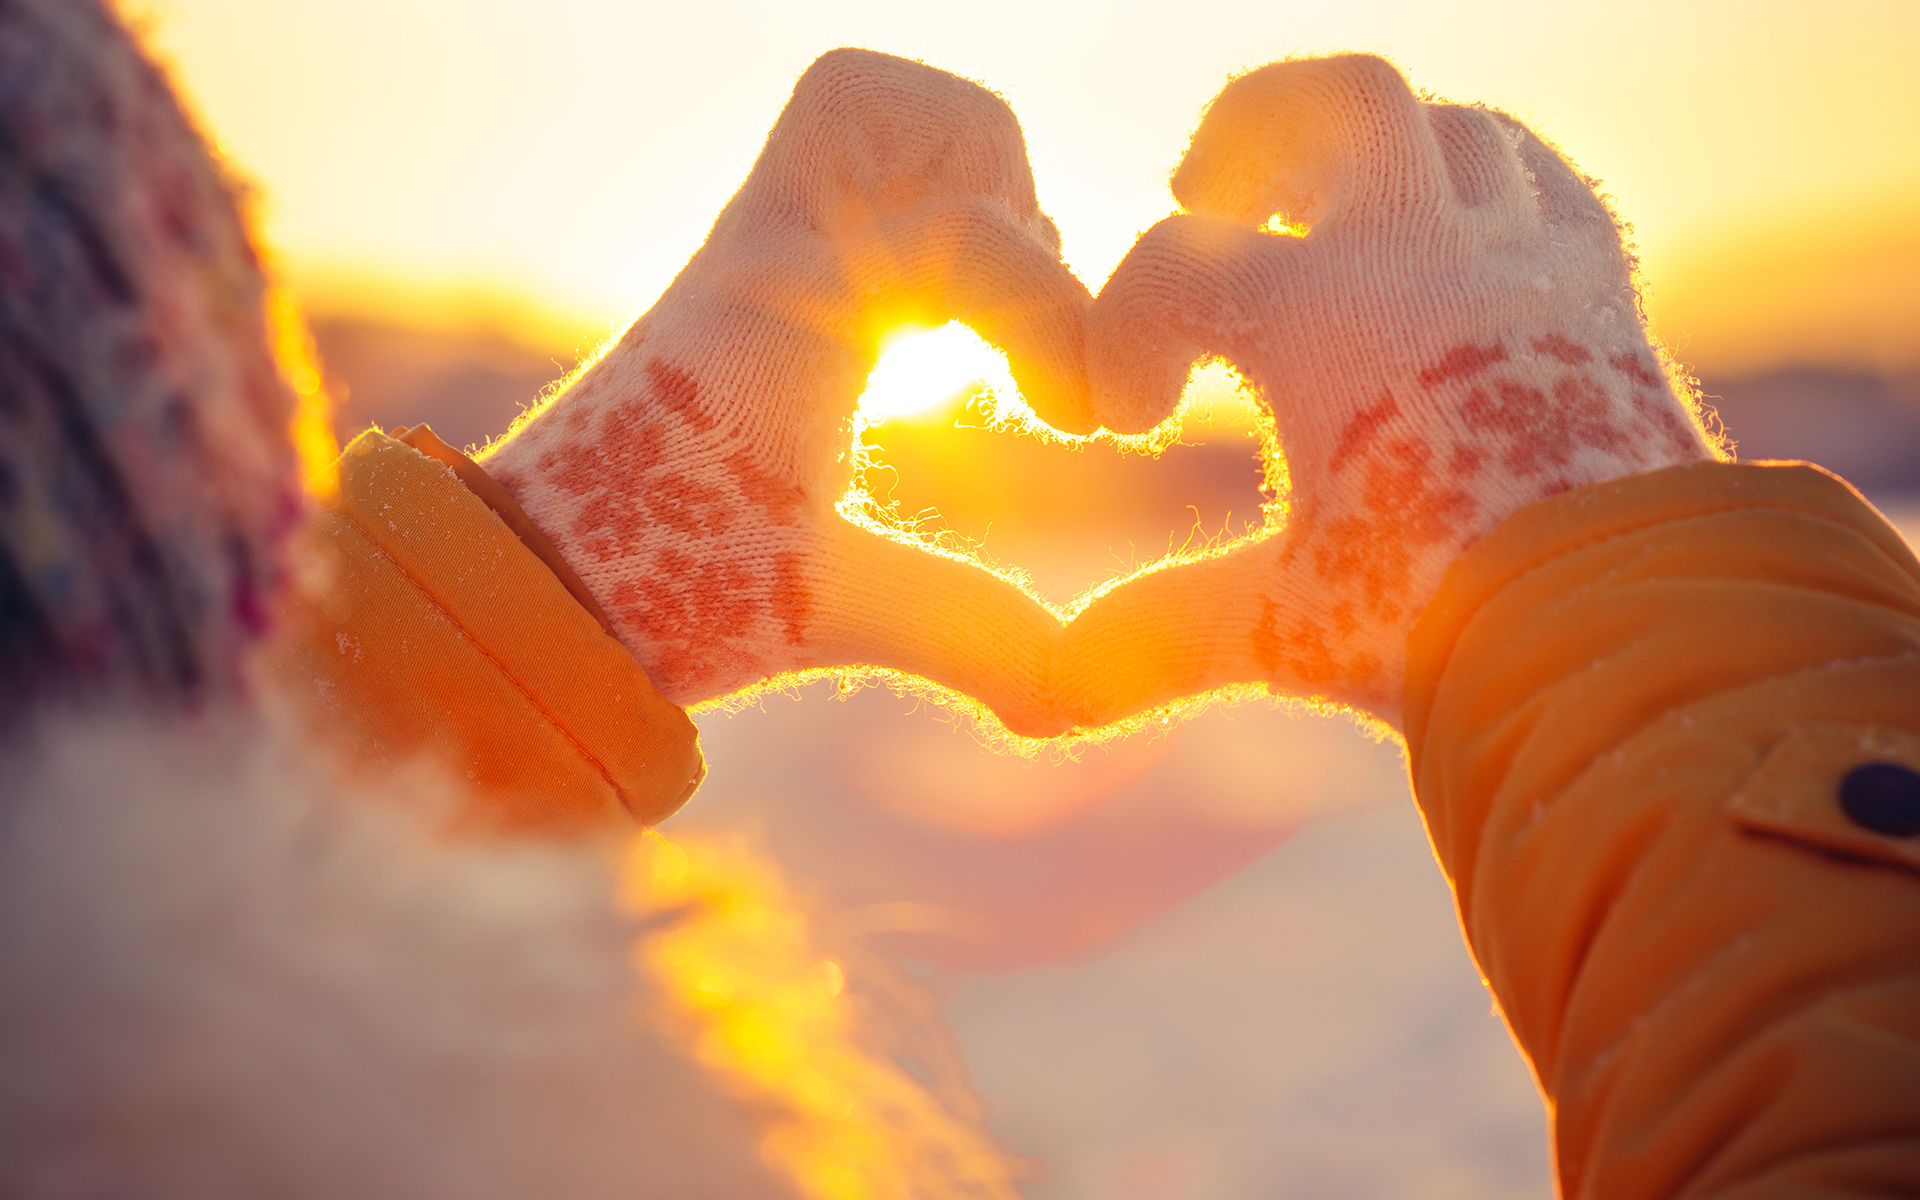 3 Mindful Practices to Deepen Your Connections - Woman hands in winter gloves making a heart shape